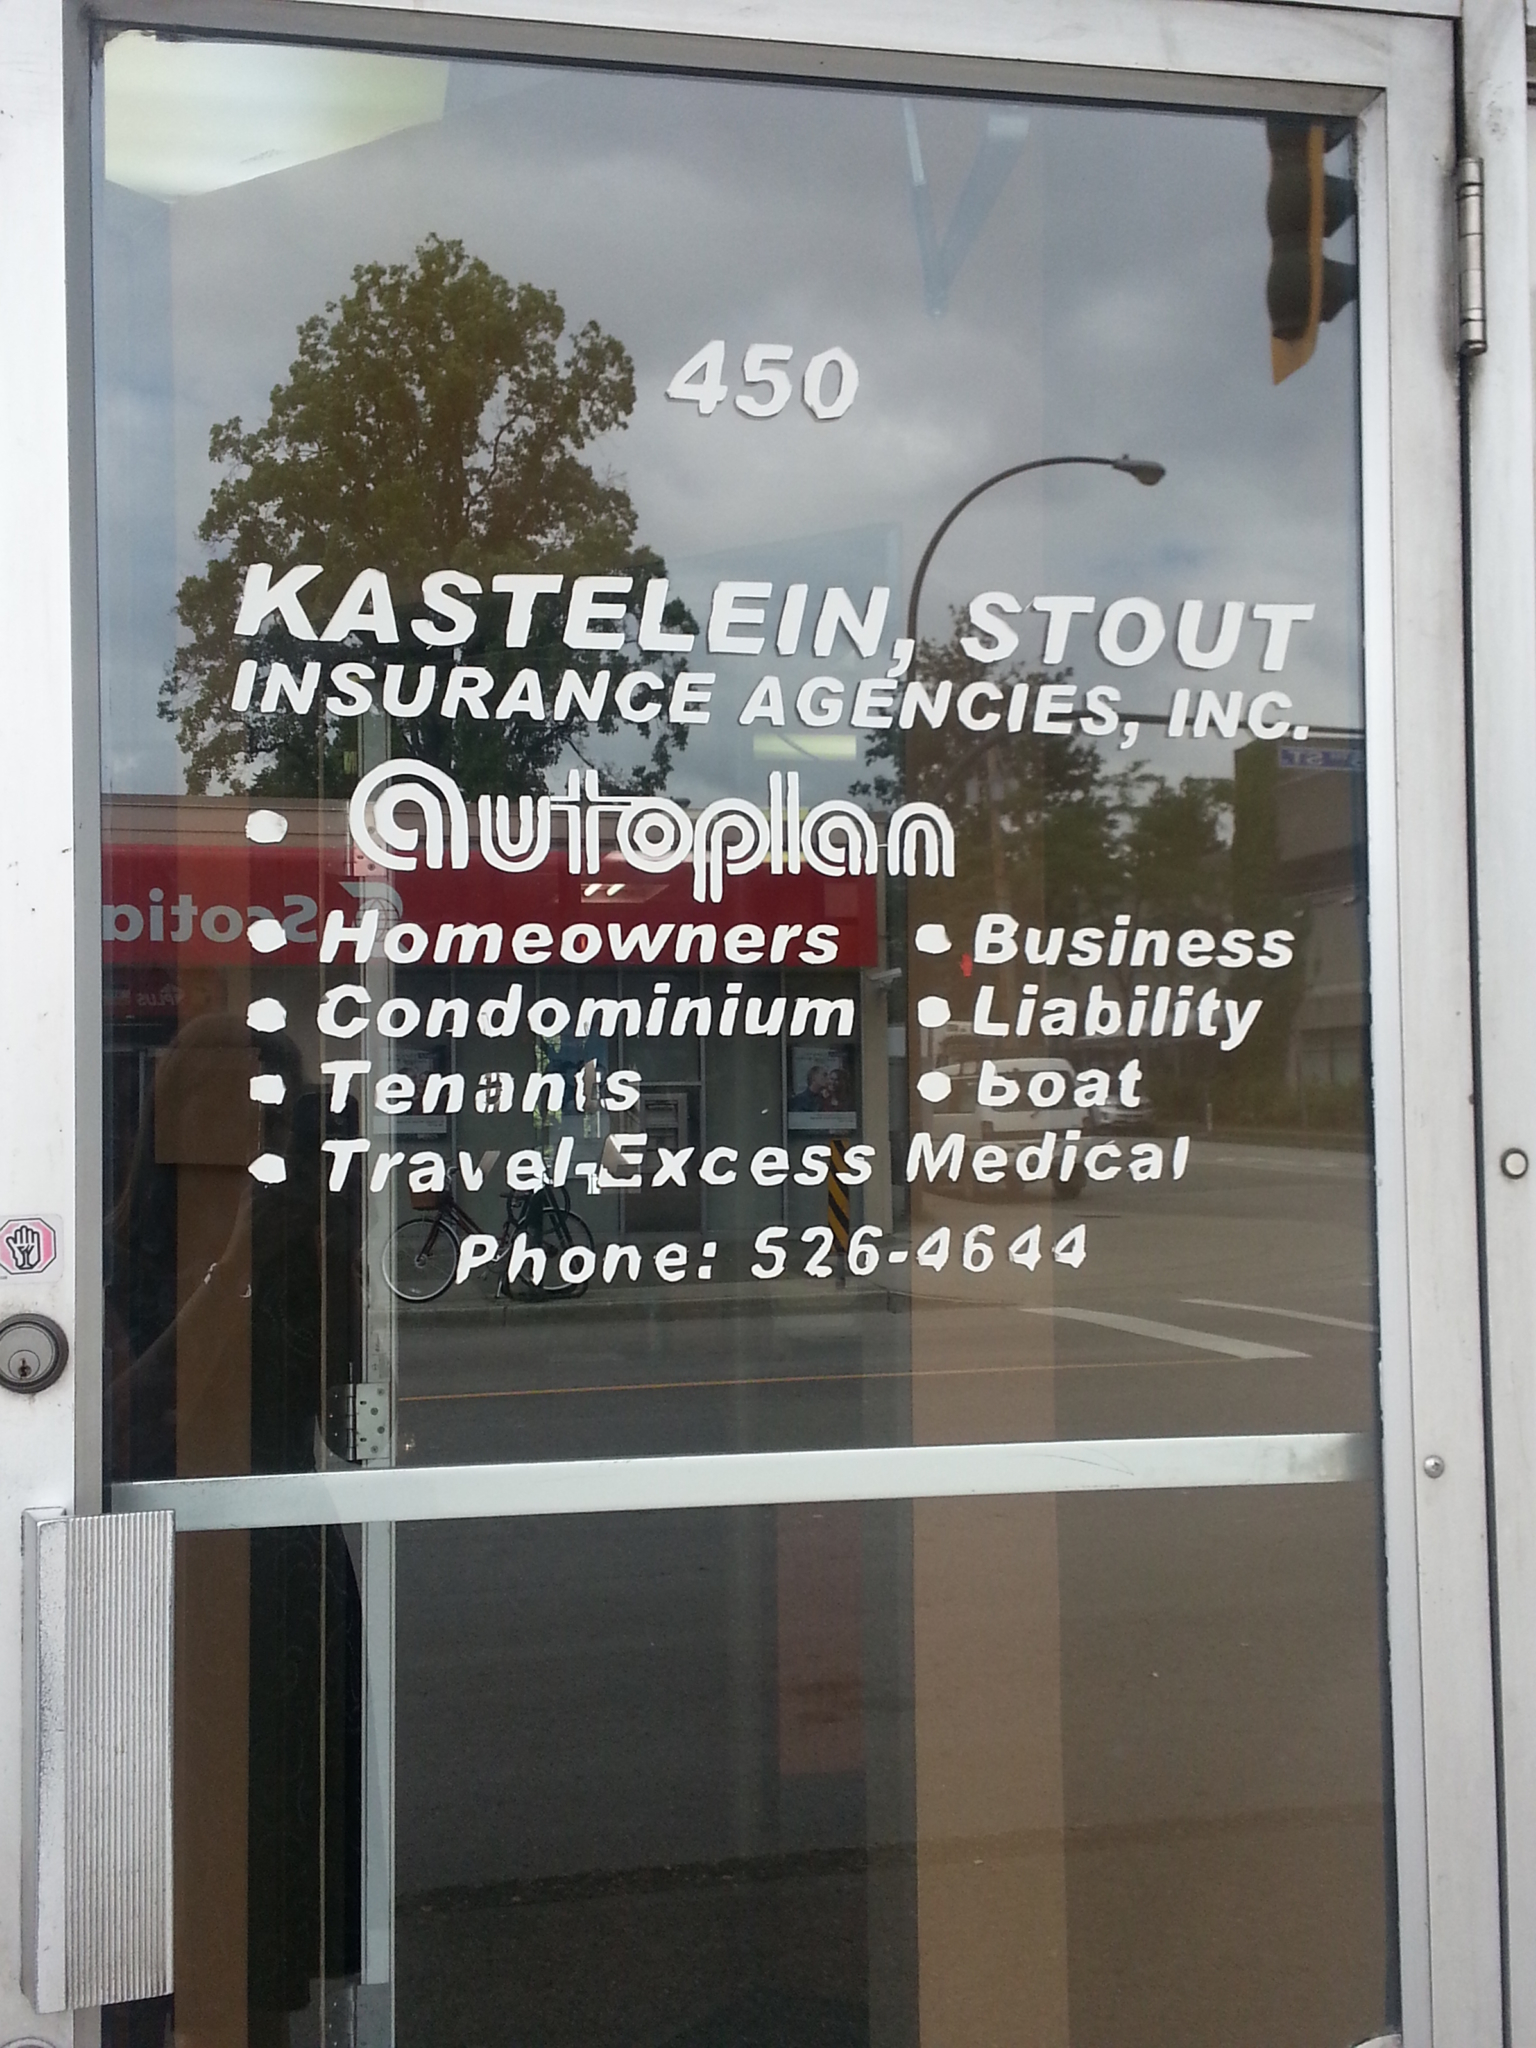 Kastelein Stout Insurance Agencies in New Westminster